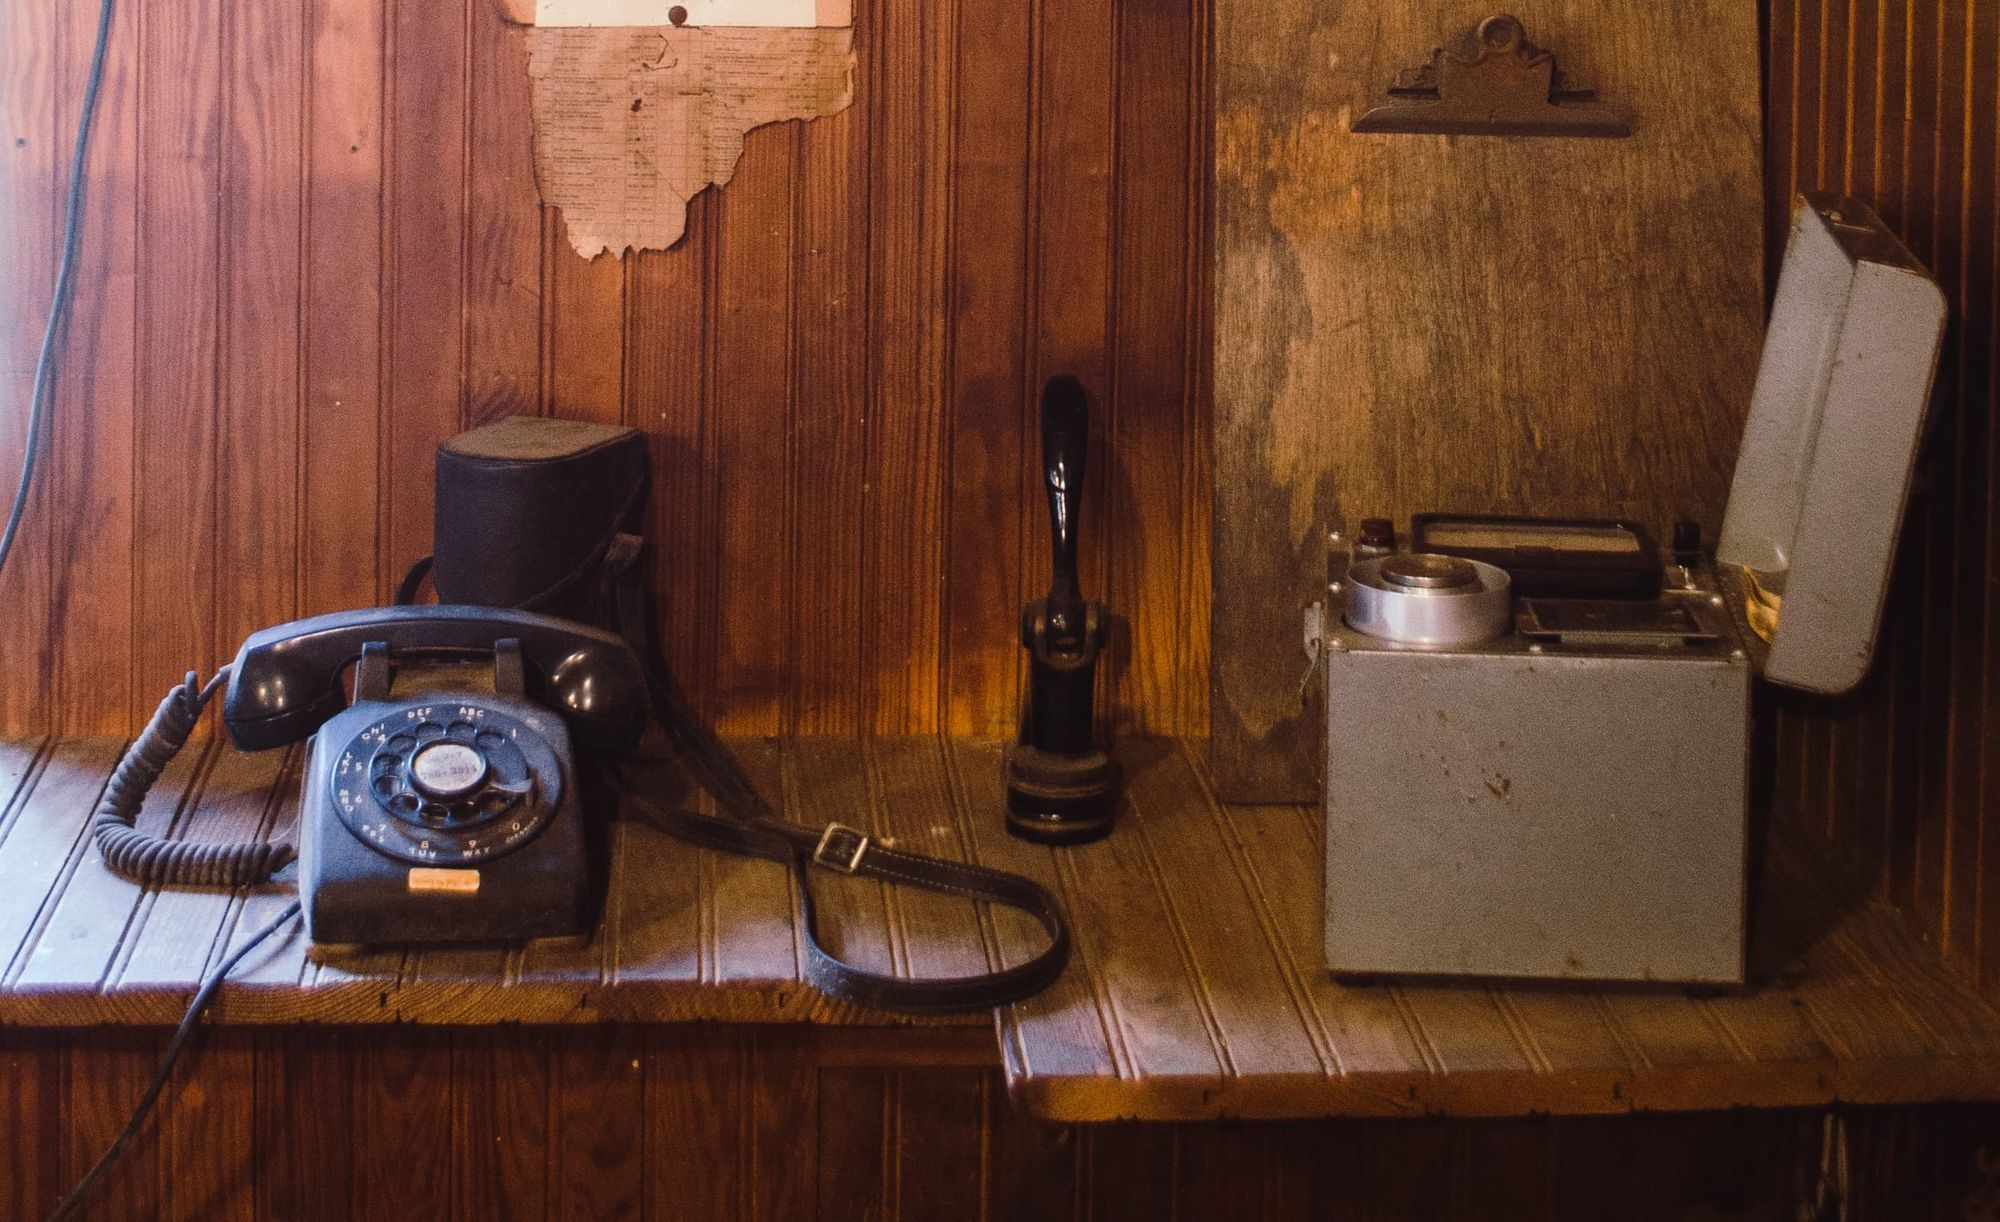 Rotary phone in old office